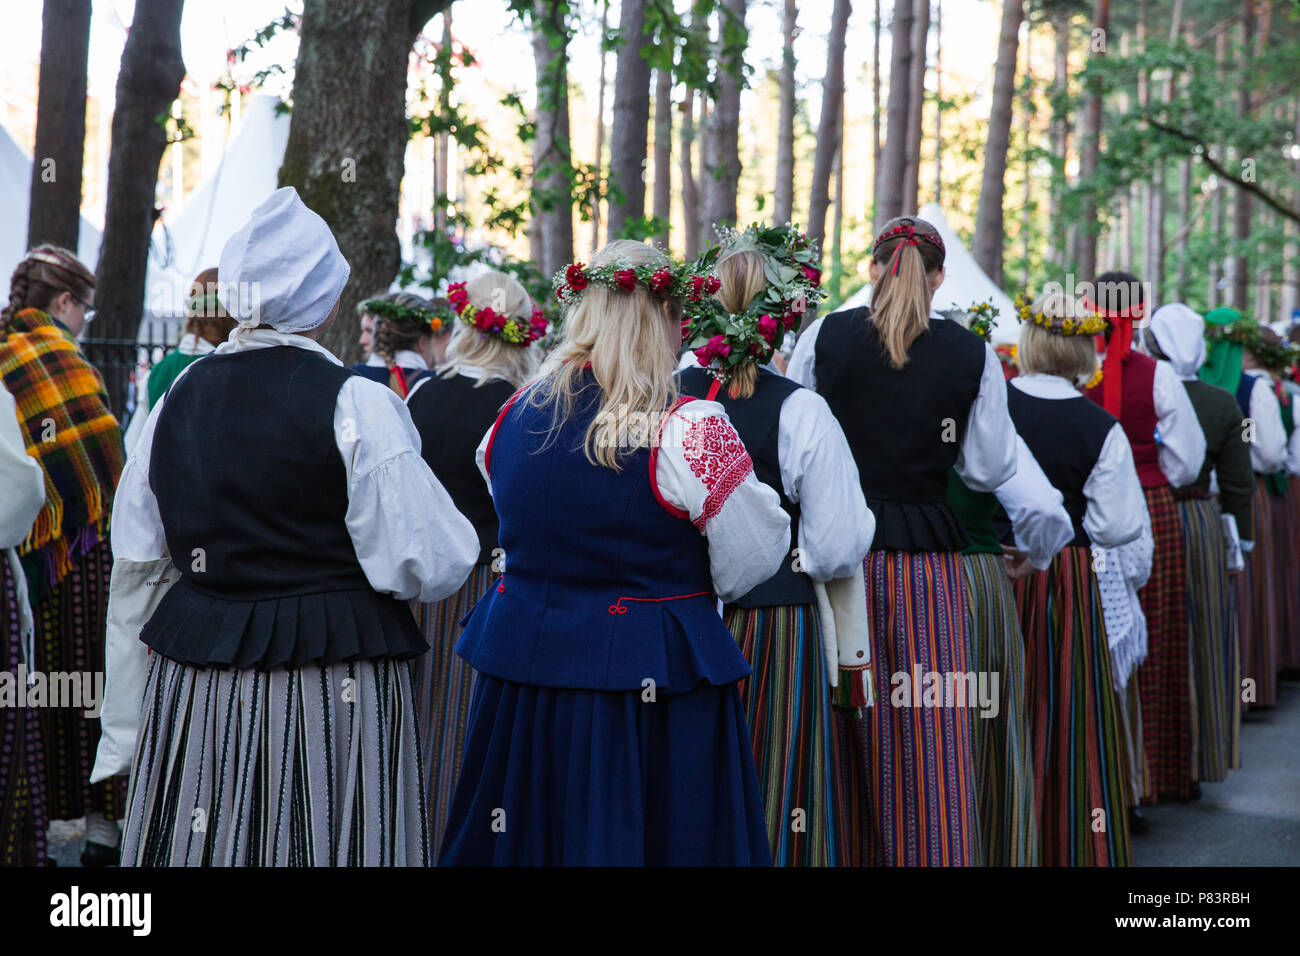 City Riga, Latvia. Choral Festival, singers at street, national costume and culture. Travel photo 2018. - Stock Image